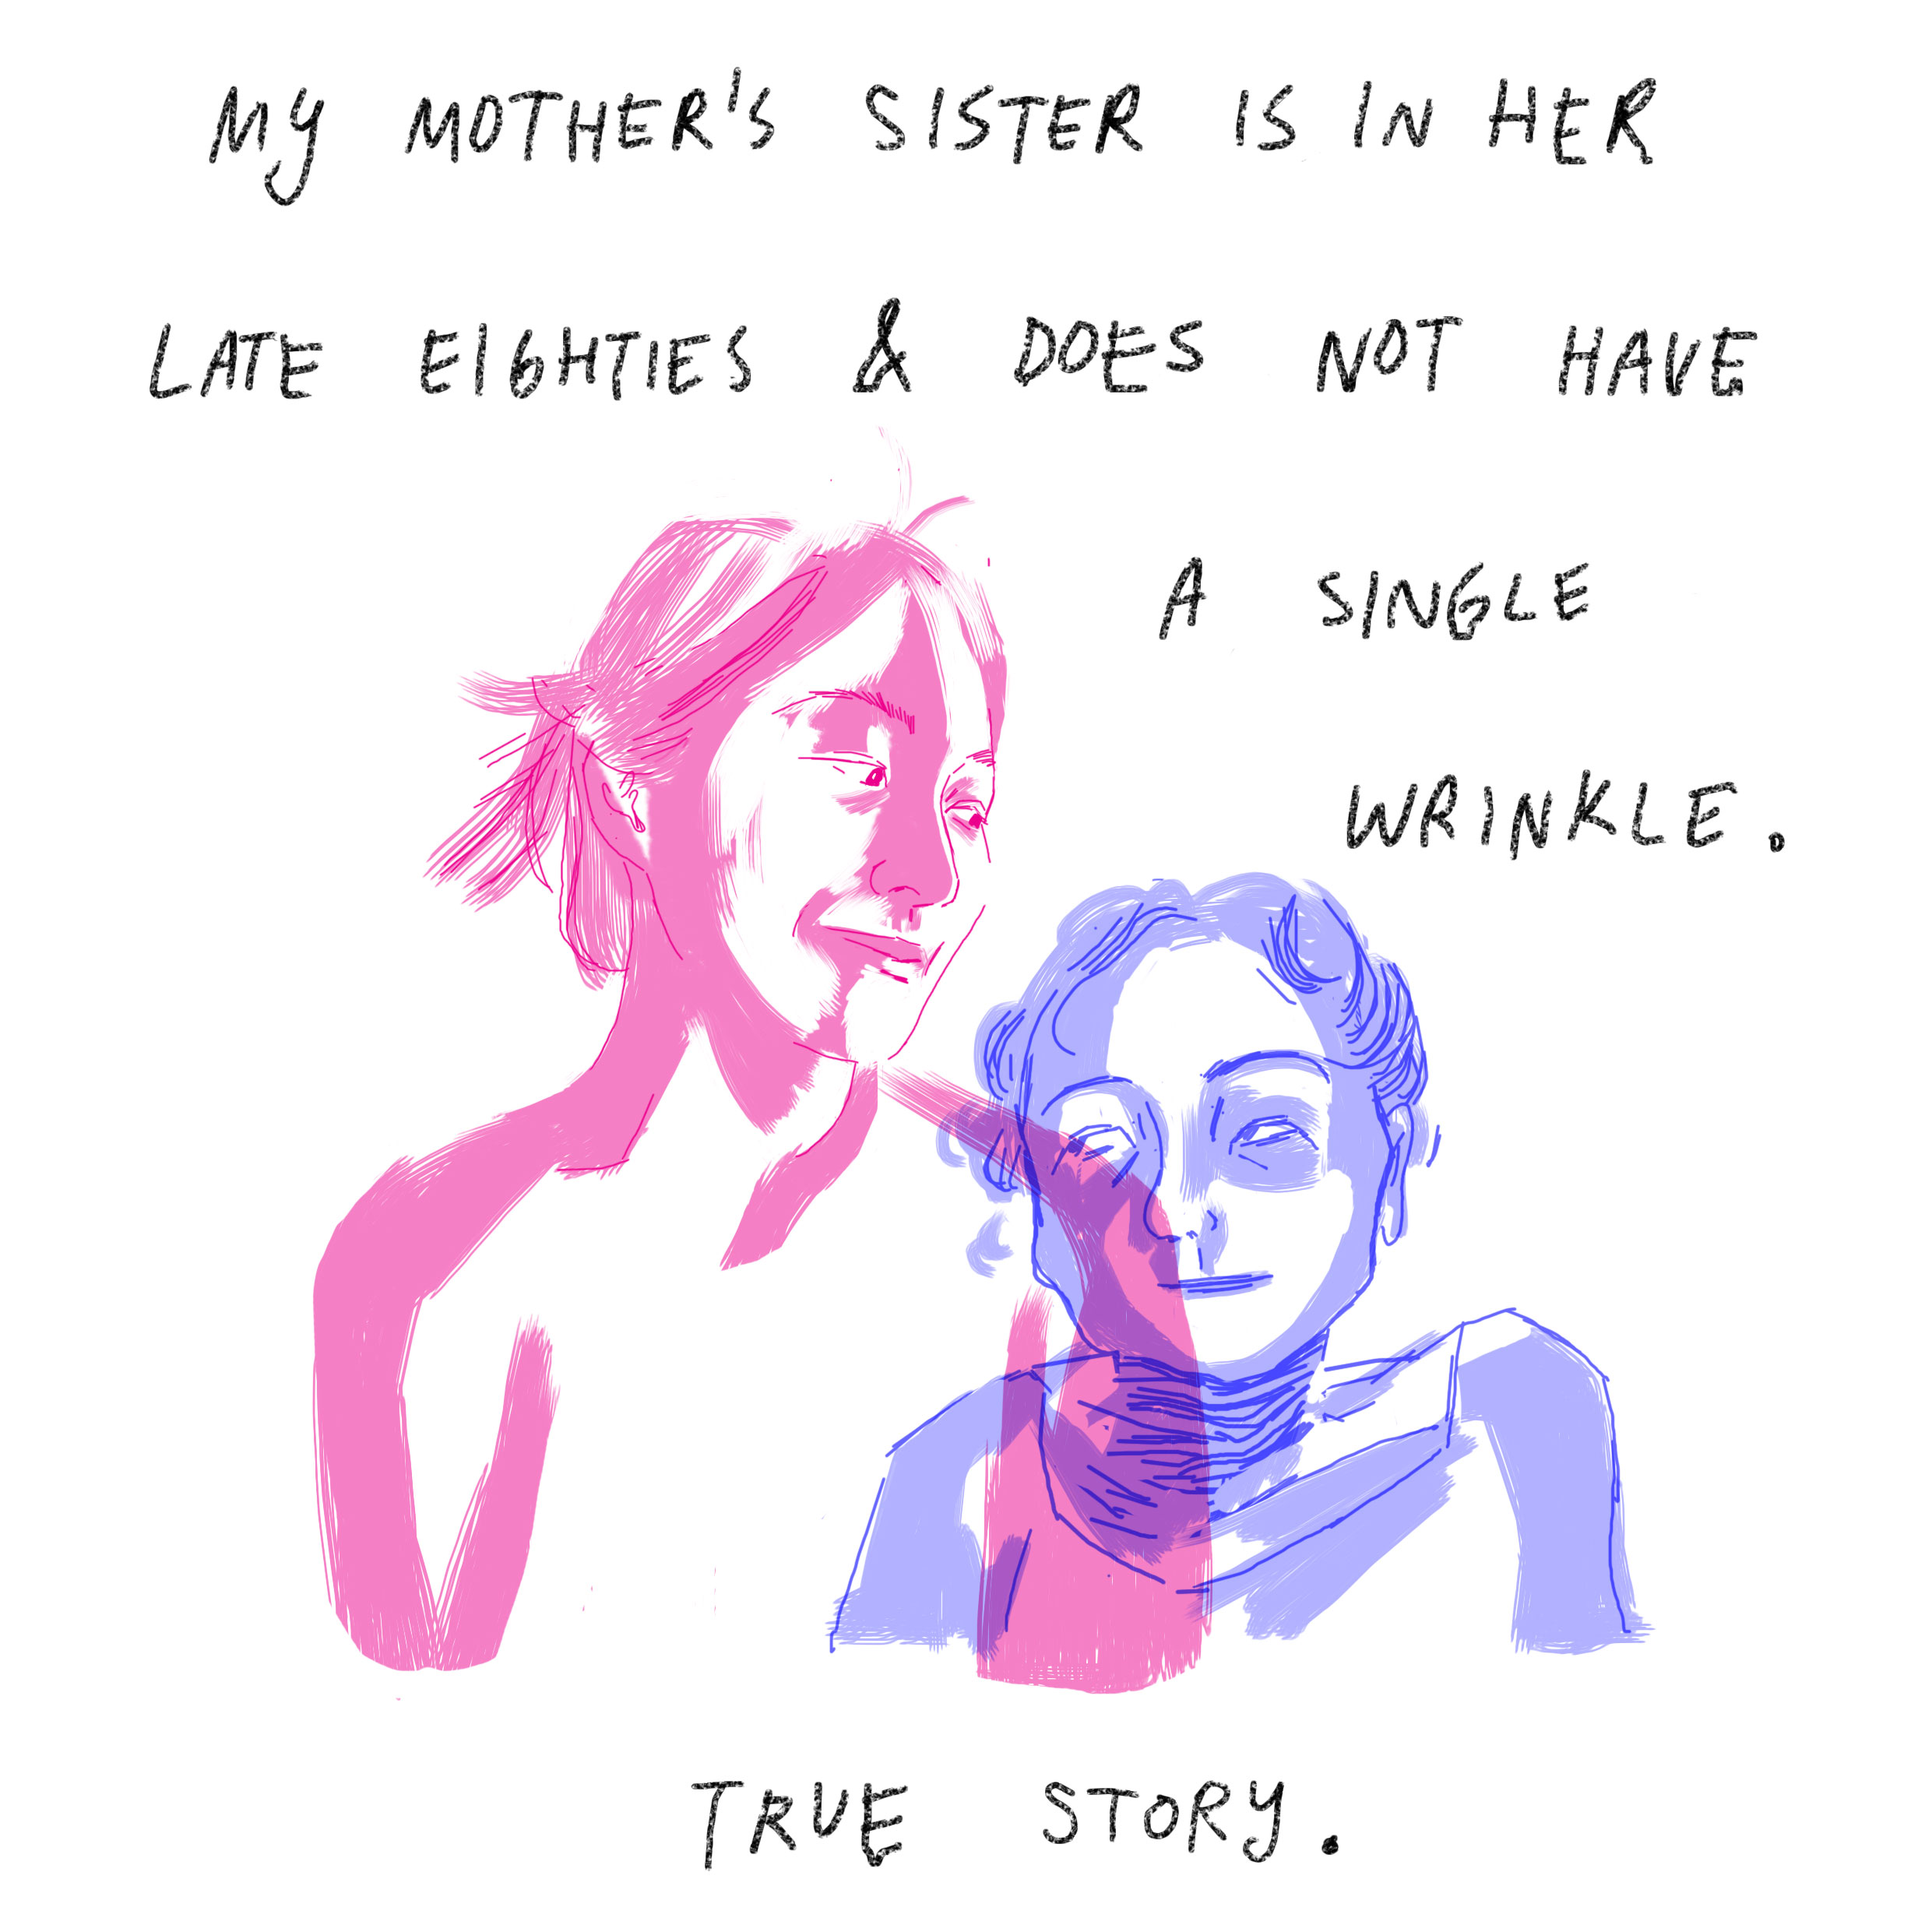 'My mother's sister is in her late eighties and does not have a single wrinkle. True story.'